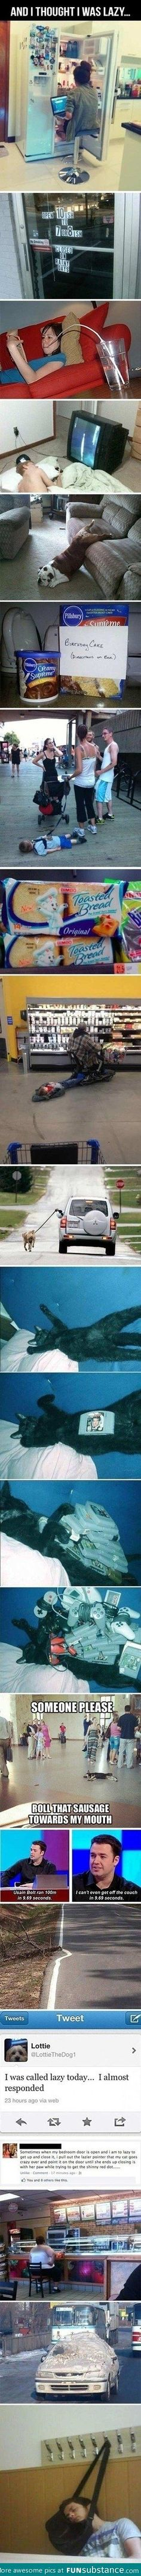 Hilarious funny humor lazy people and animals lmao Funny Cute, Haha Funny, Funny Memes, Funny Stuff, Freaking Hilarious, Funny Things, Foto Fails, All Meme, Lol